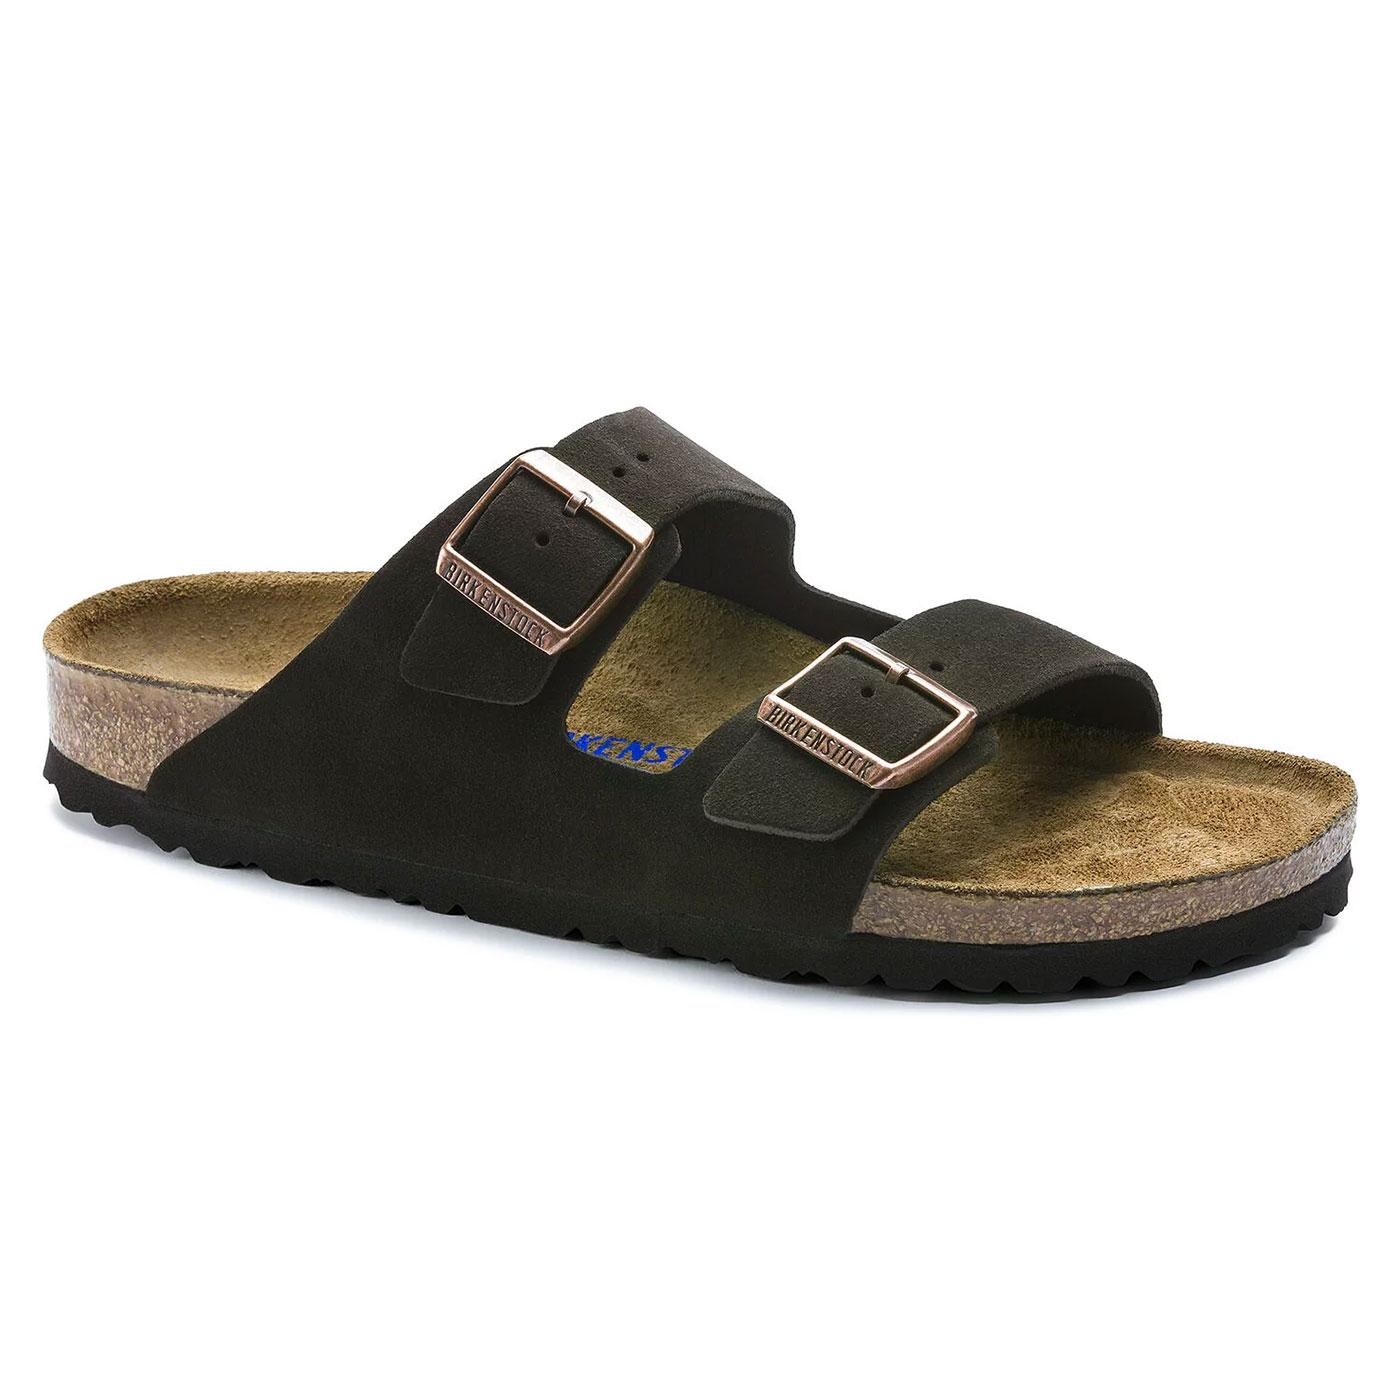 BIRKENSTOCK Arizona SFB Women's Suede Sandals (M)